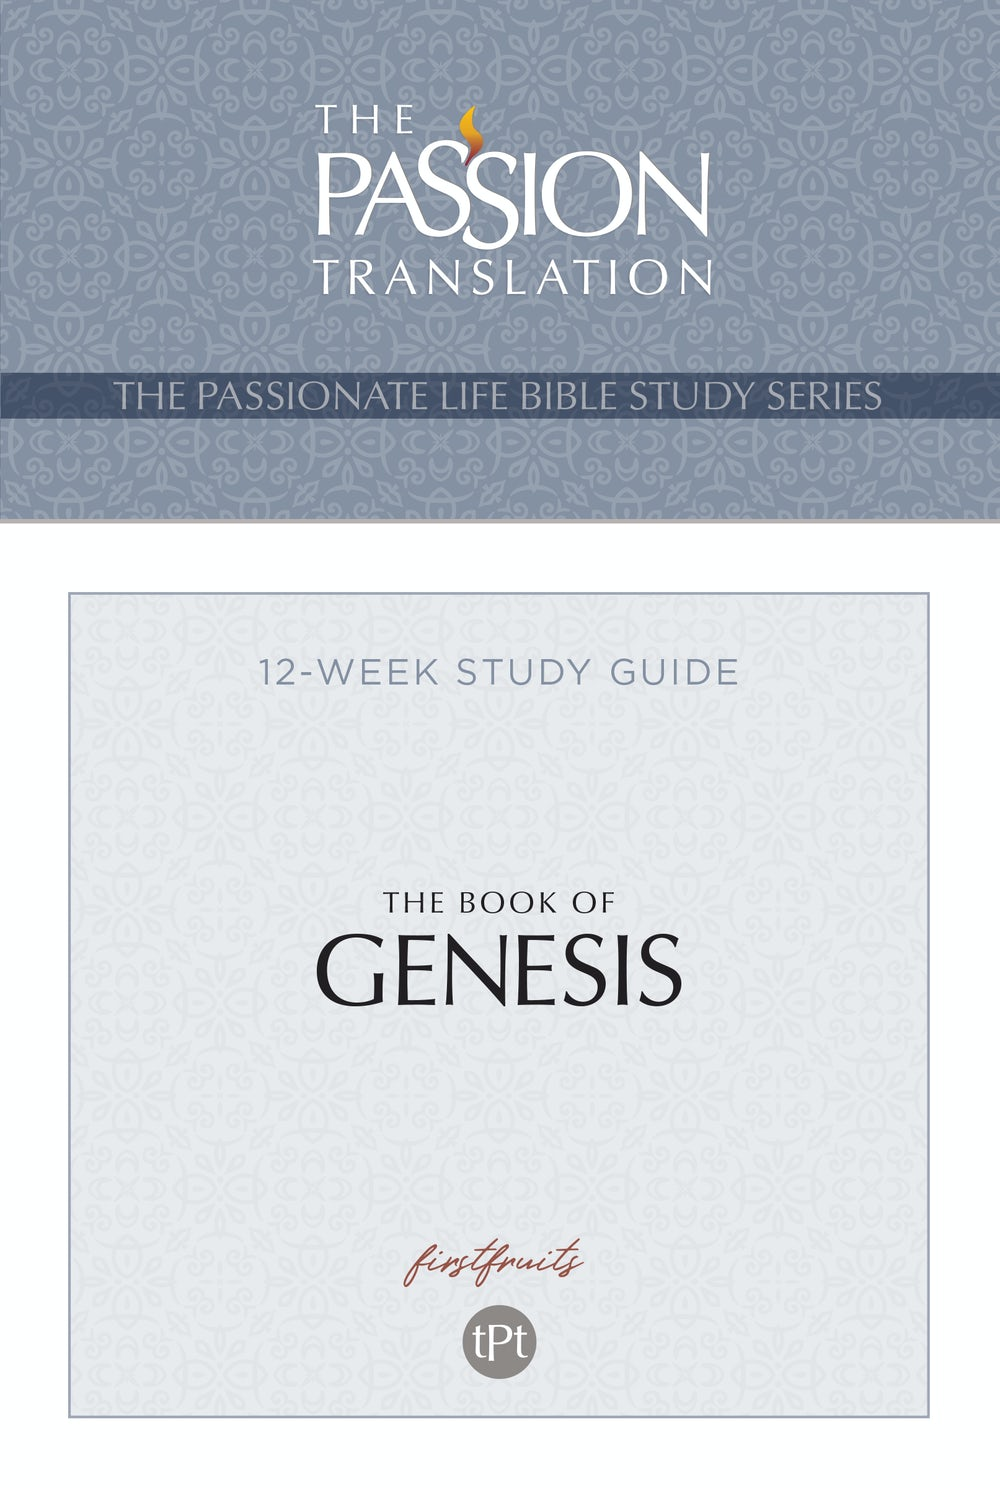 The Passion Translation Book of Genesis